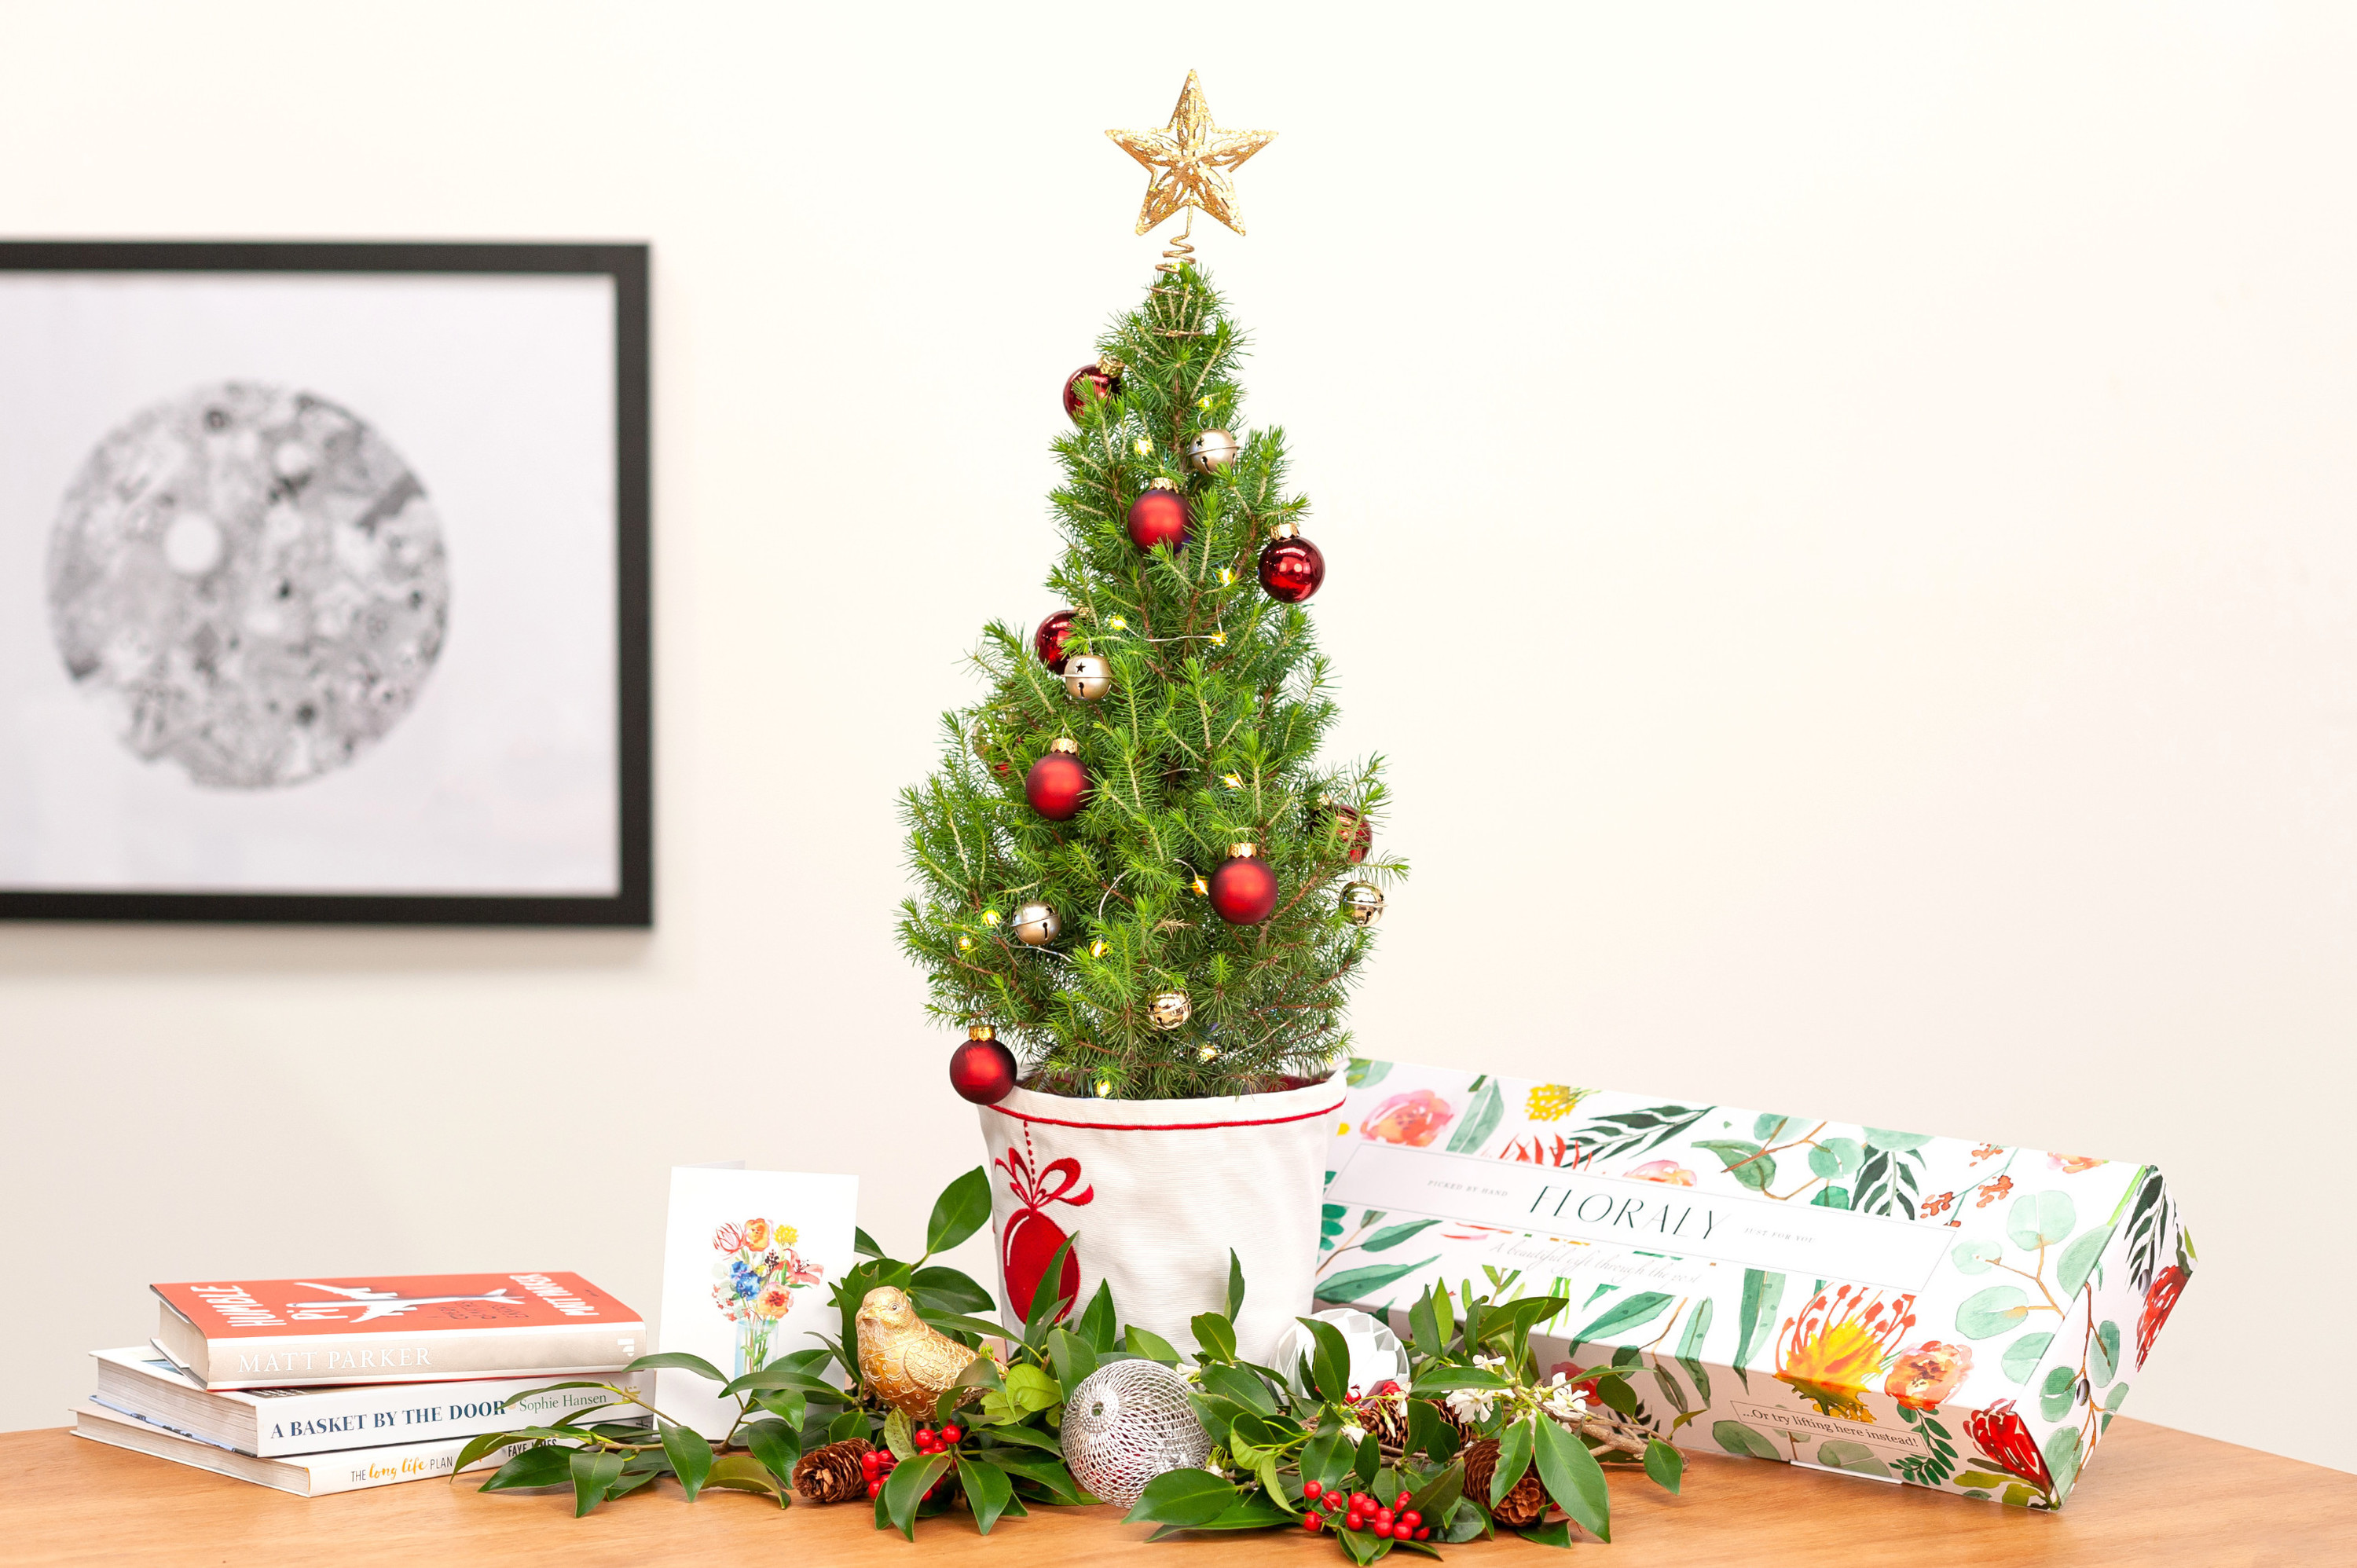 Sydneysiders can order tiny, living Christmas trees direct to their door (and delivery is free)